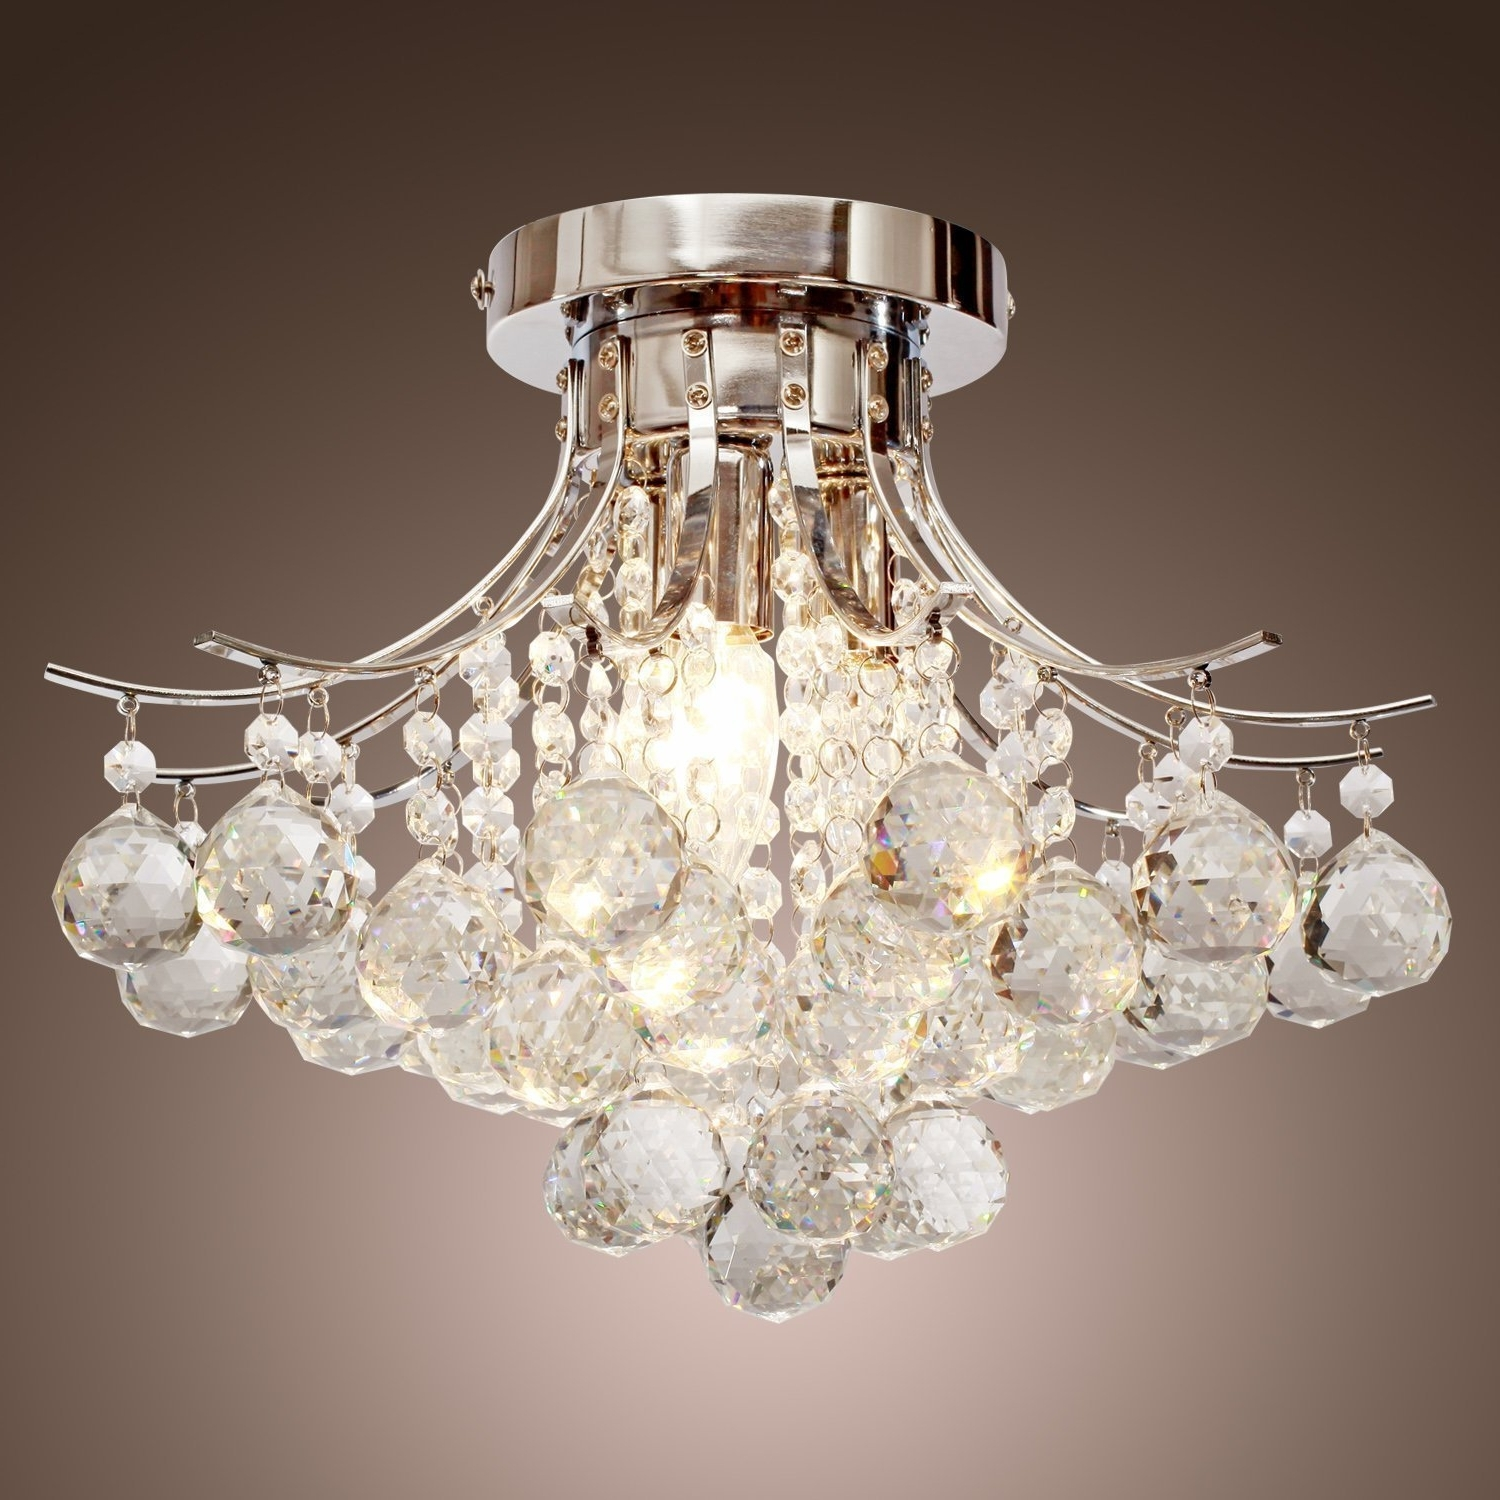 Fashionable Small Chandeliers For Low Ceilings With Regard To Light : Living Room Ceiling Lights Close To Flush Mount Lighting (View 6 of 20)